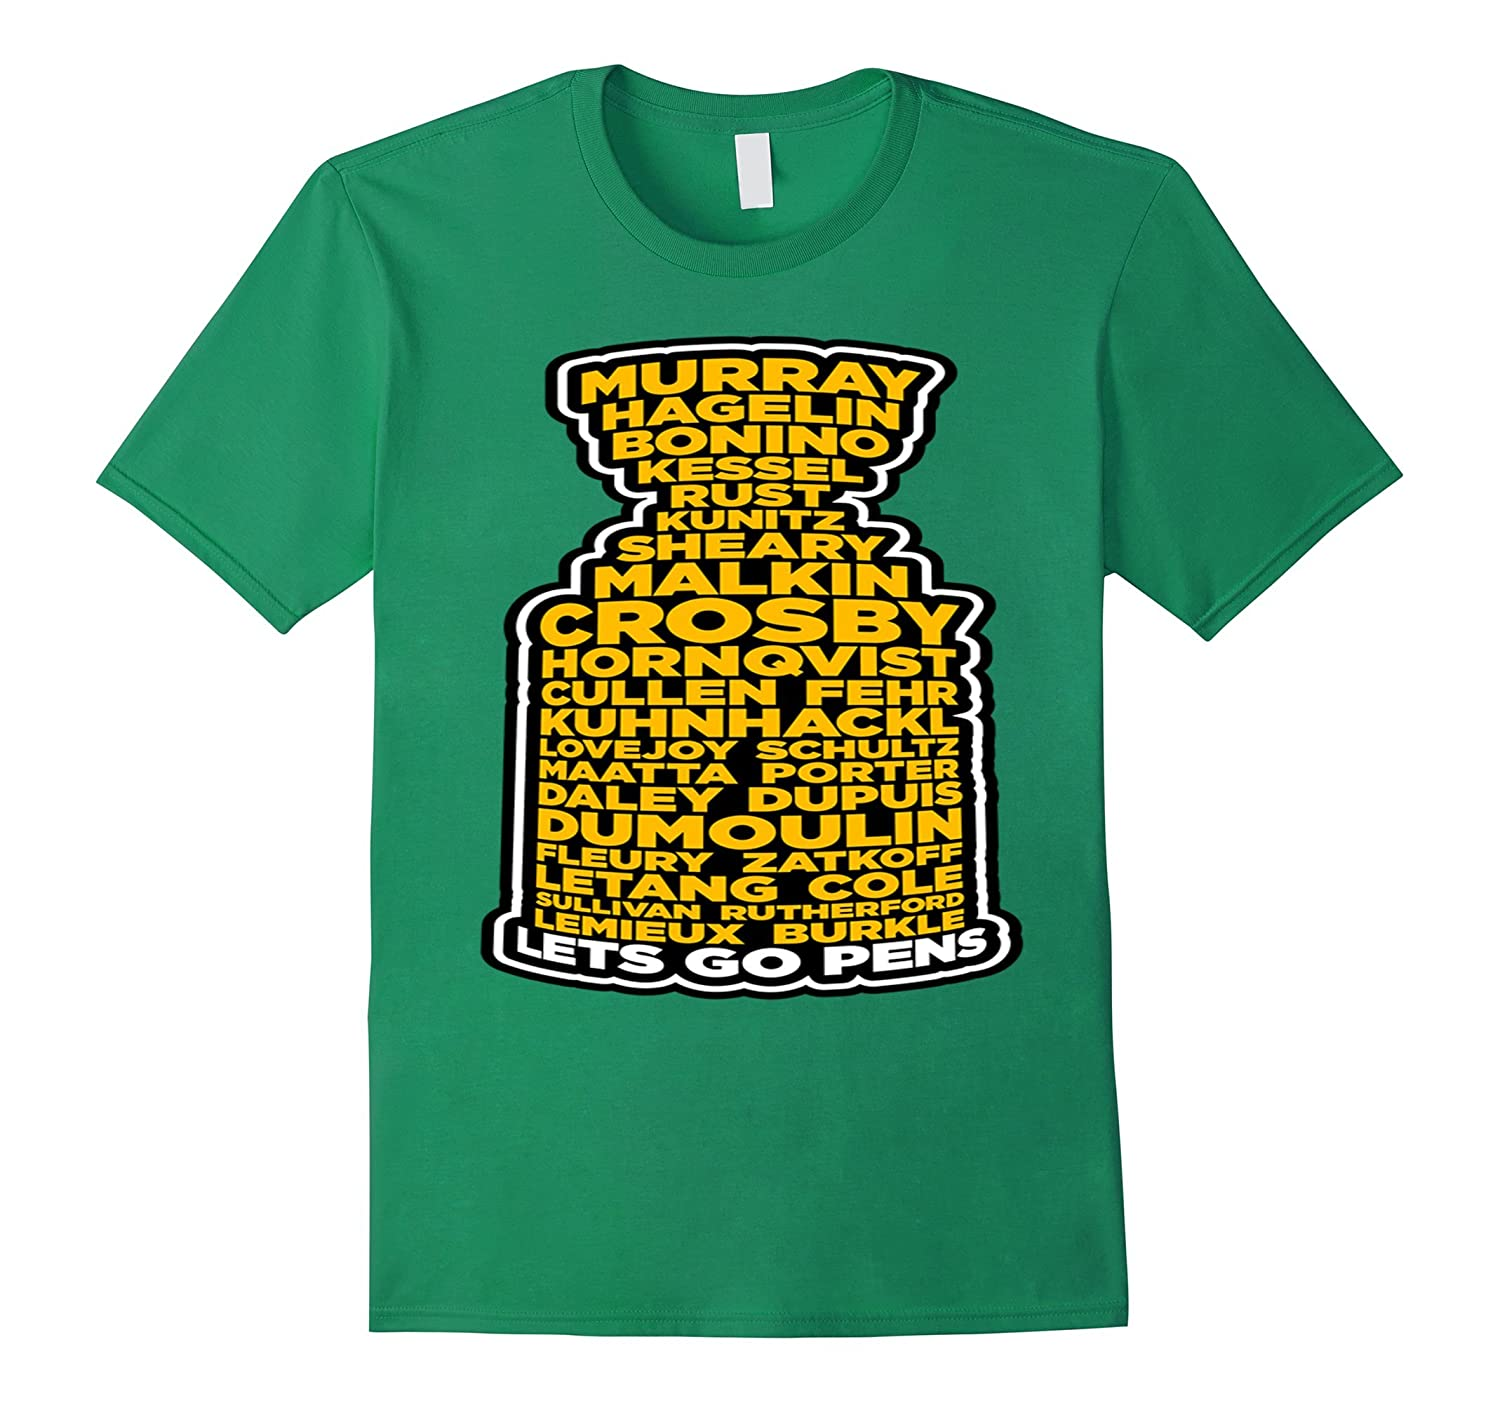 Roster Of Champs Pens Lets Go T- shirt for Men Women And Chi-Vaci